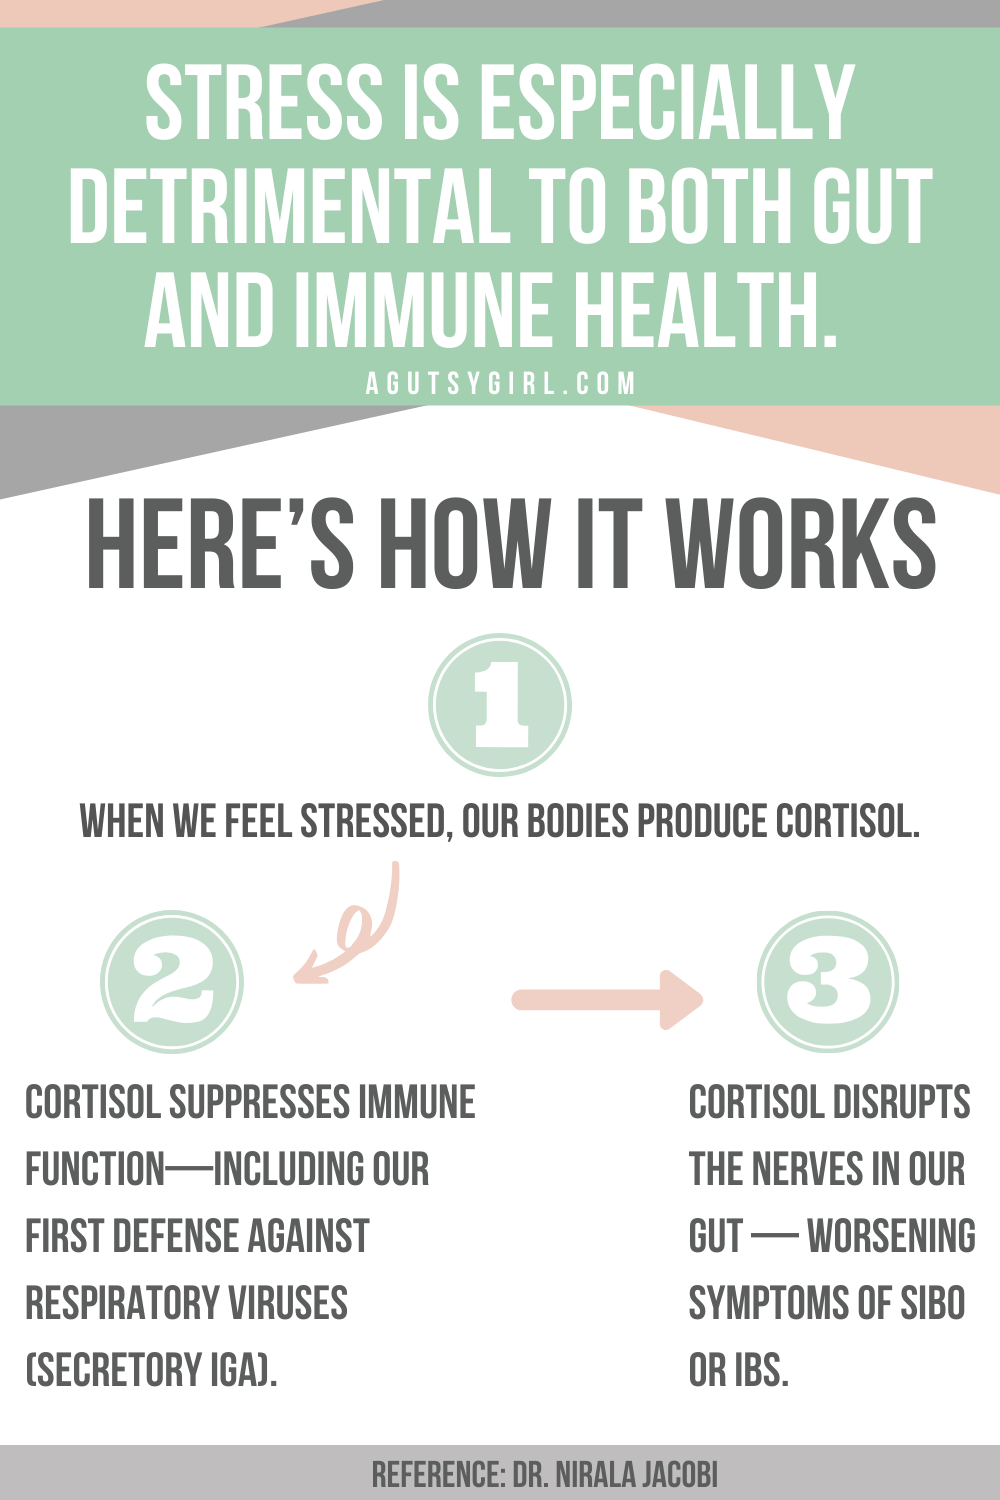 The Importance of Shifting from Stress to Happiness agutsygirl.com #guthealth #ibs #healthyliving #stress gut health immune how it works